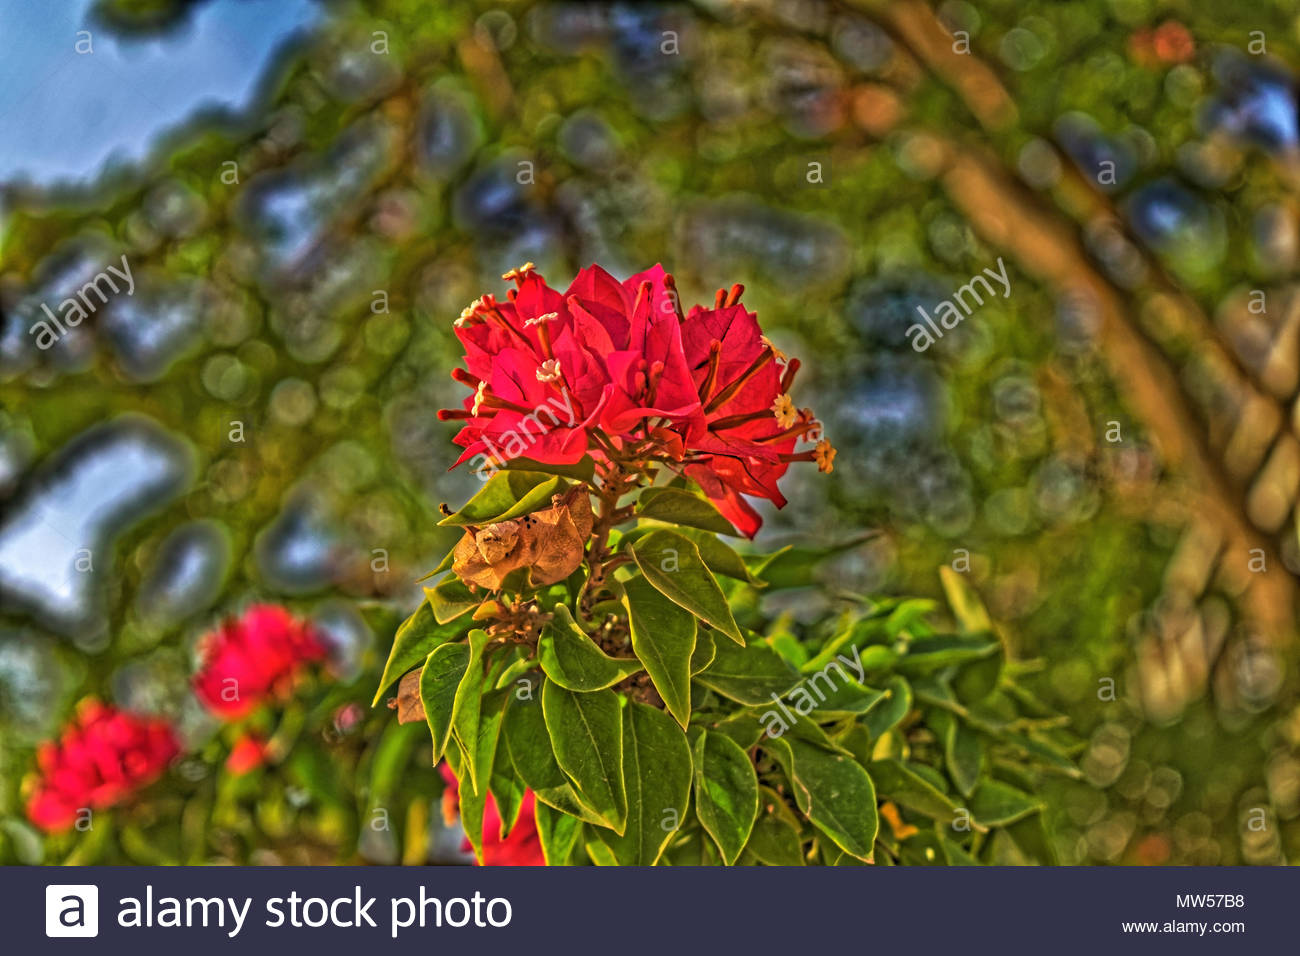 Flower meanings stock photos flower meanings stock images alamy close up photo of a flower in the sunset can have a variety of uses and izmirmasajfo